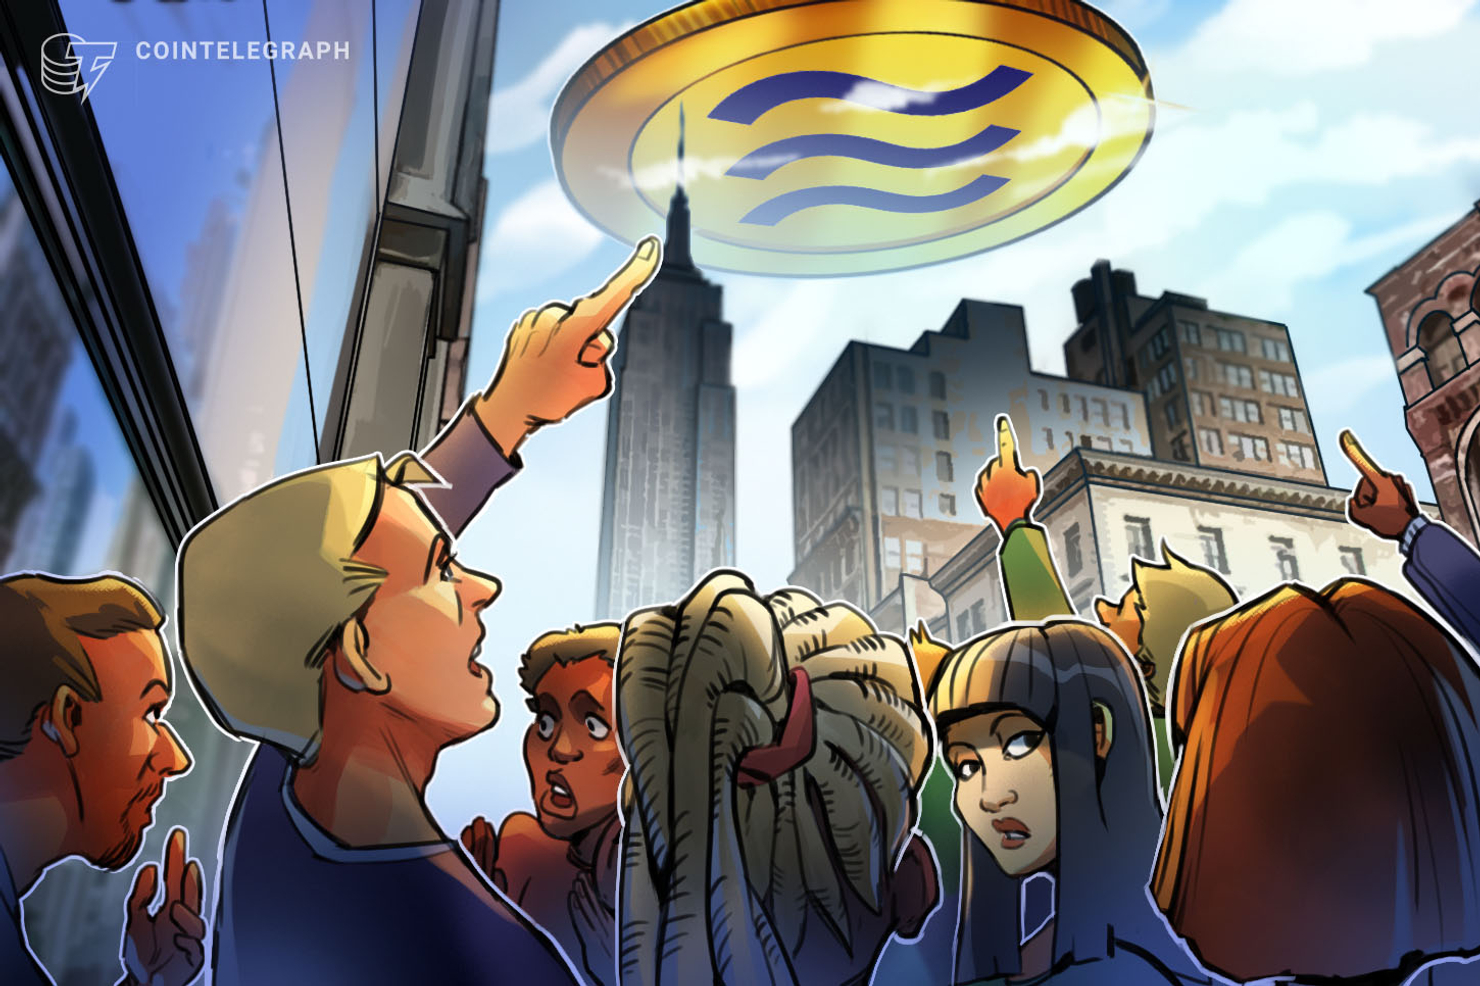 Facebook's Libra Coin: Initial Reactions Mixed